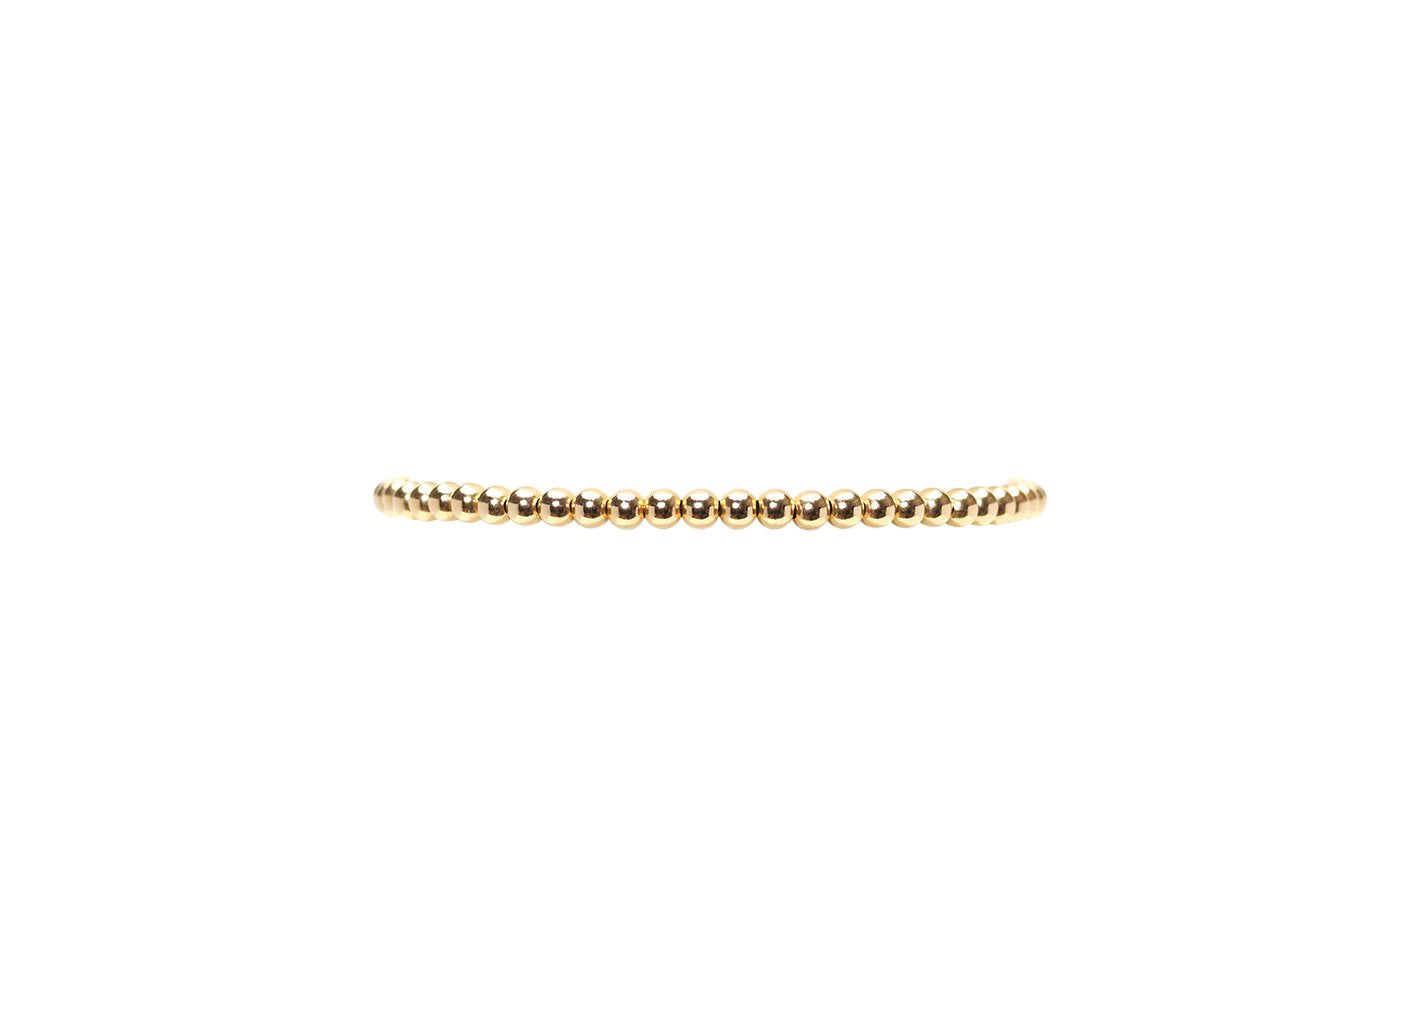 3mm Yellow Gold Filled Bracelet - CHILD SIZE